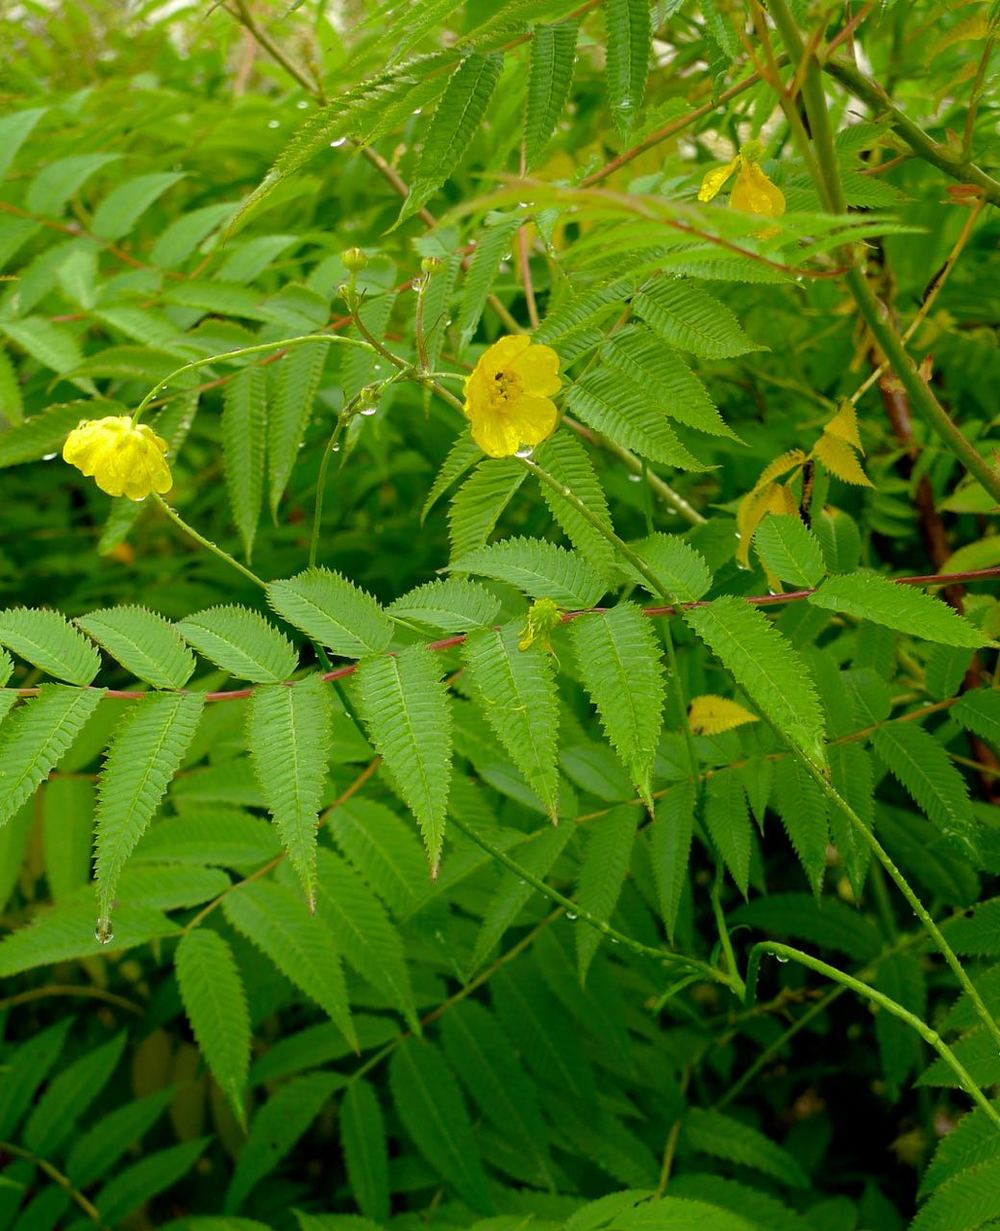 A delicate yellow flower with very zig-zaggy edged leaves